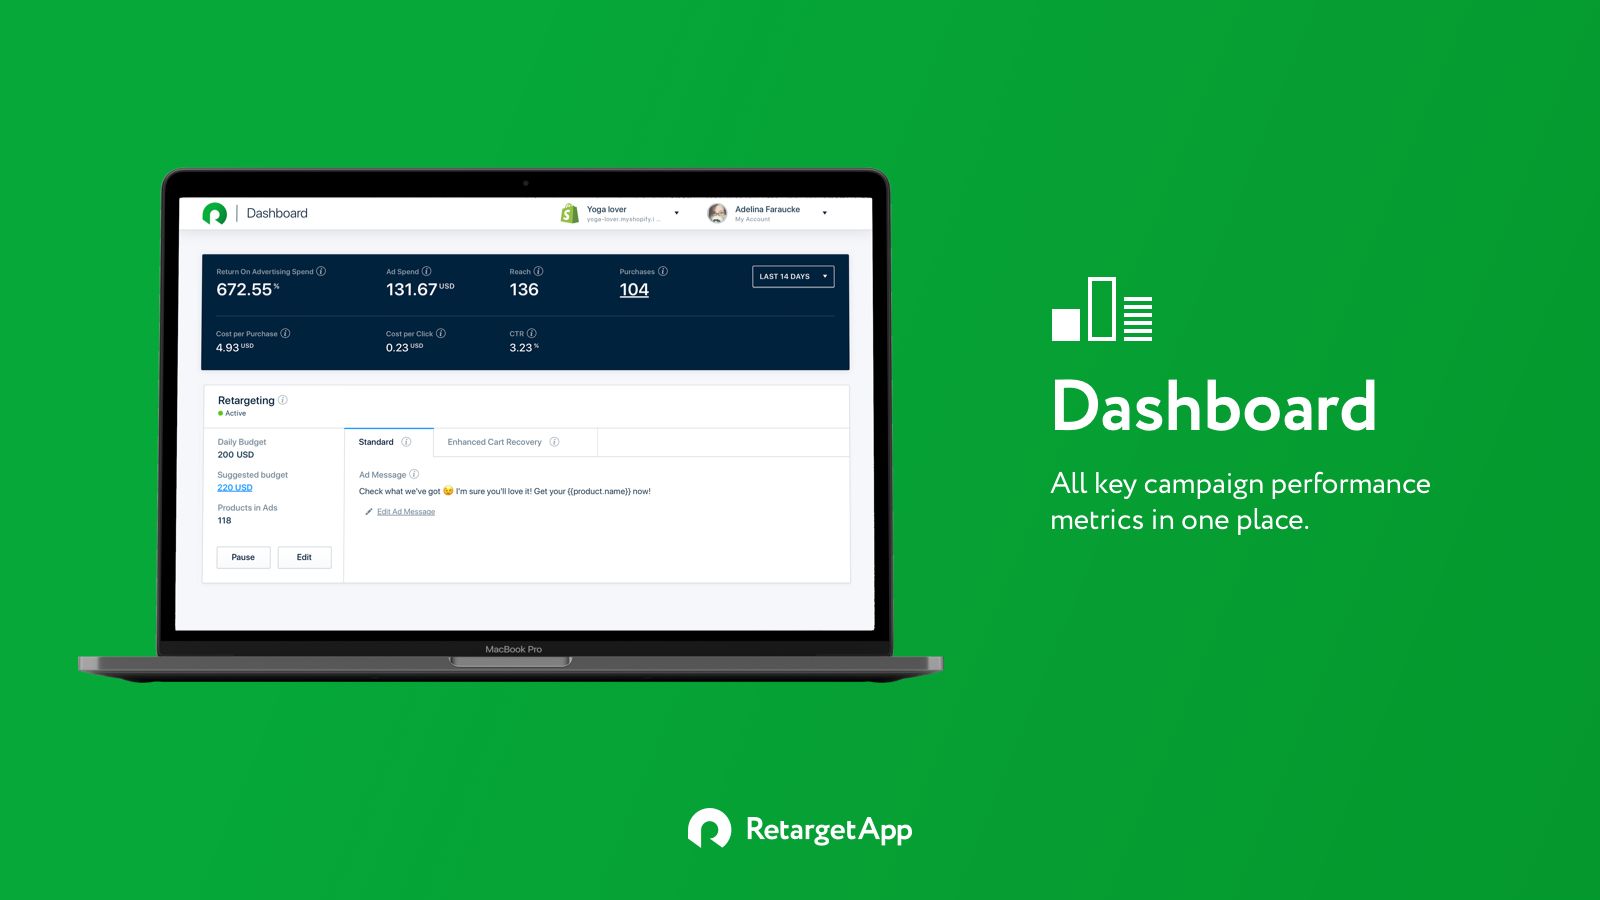 All key campaign performance metrics in one dashboard